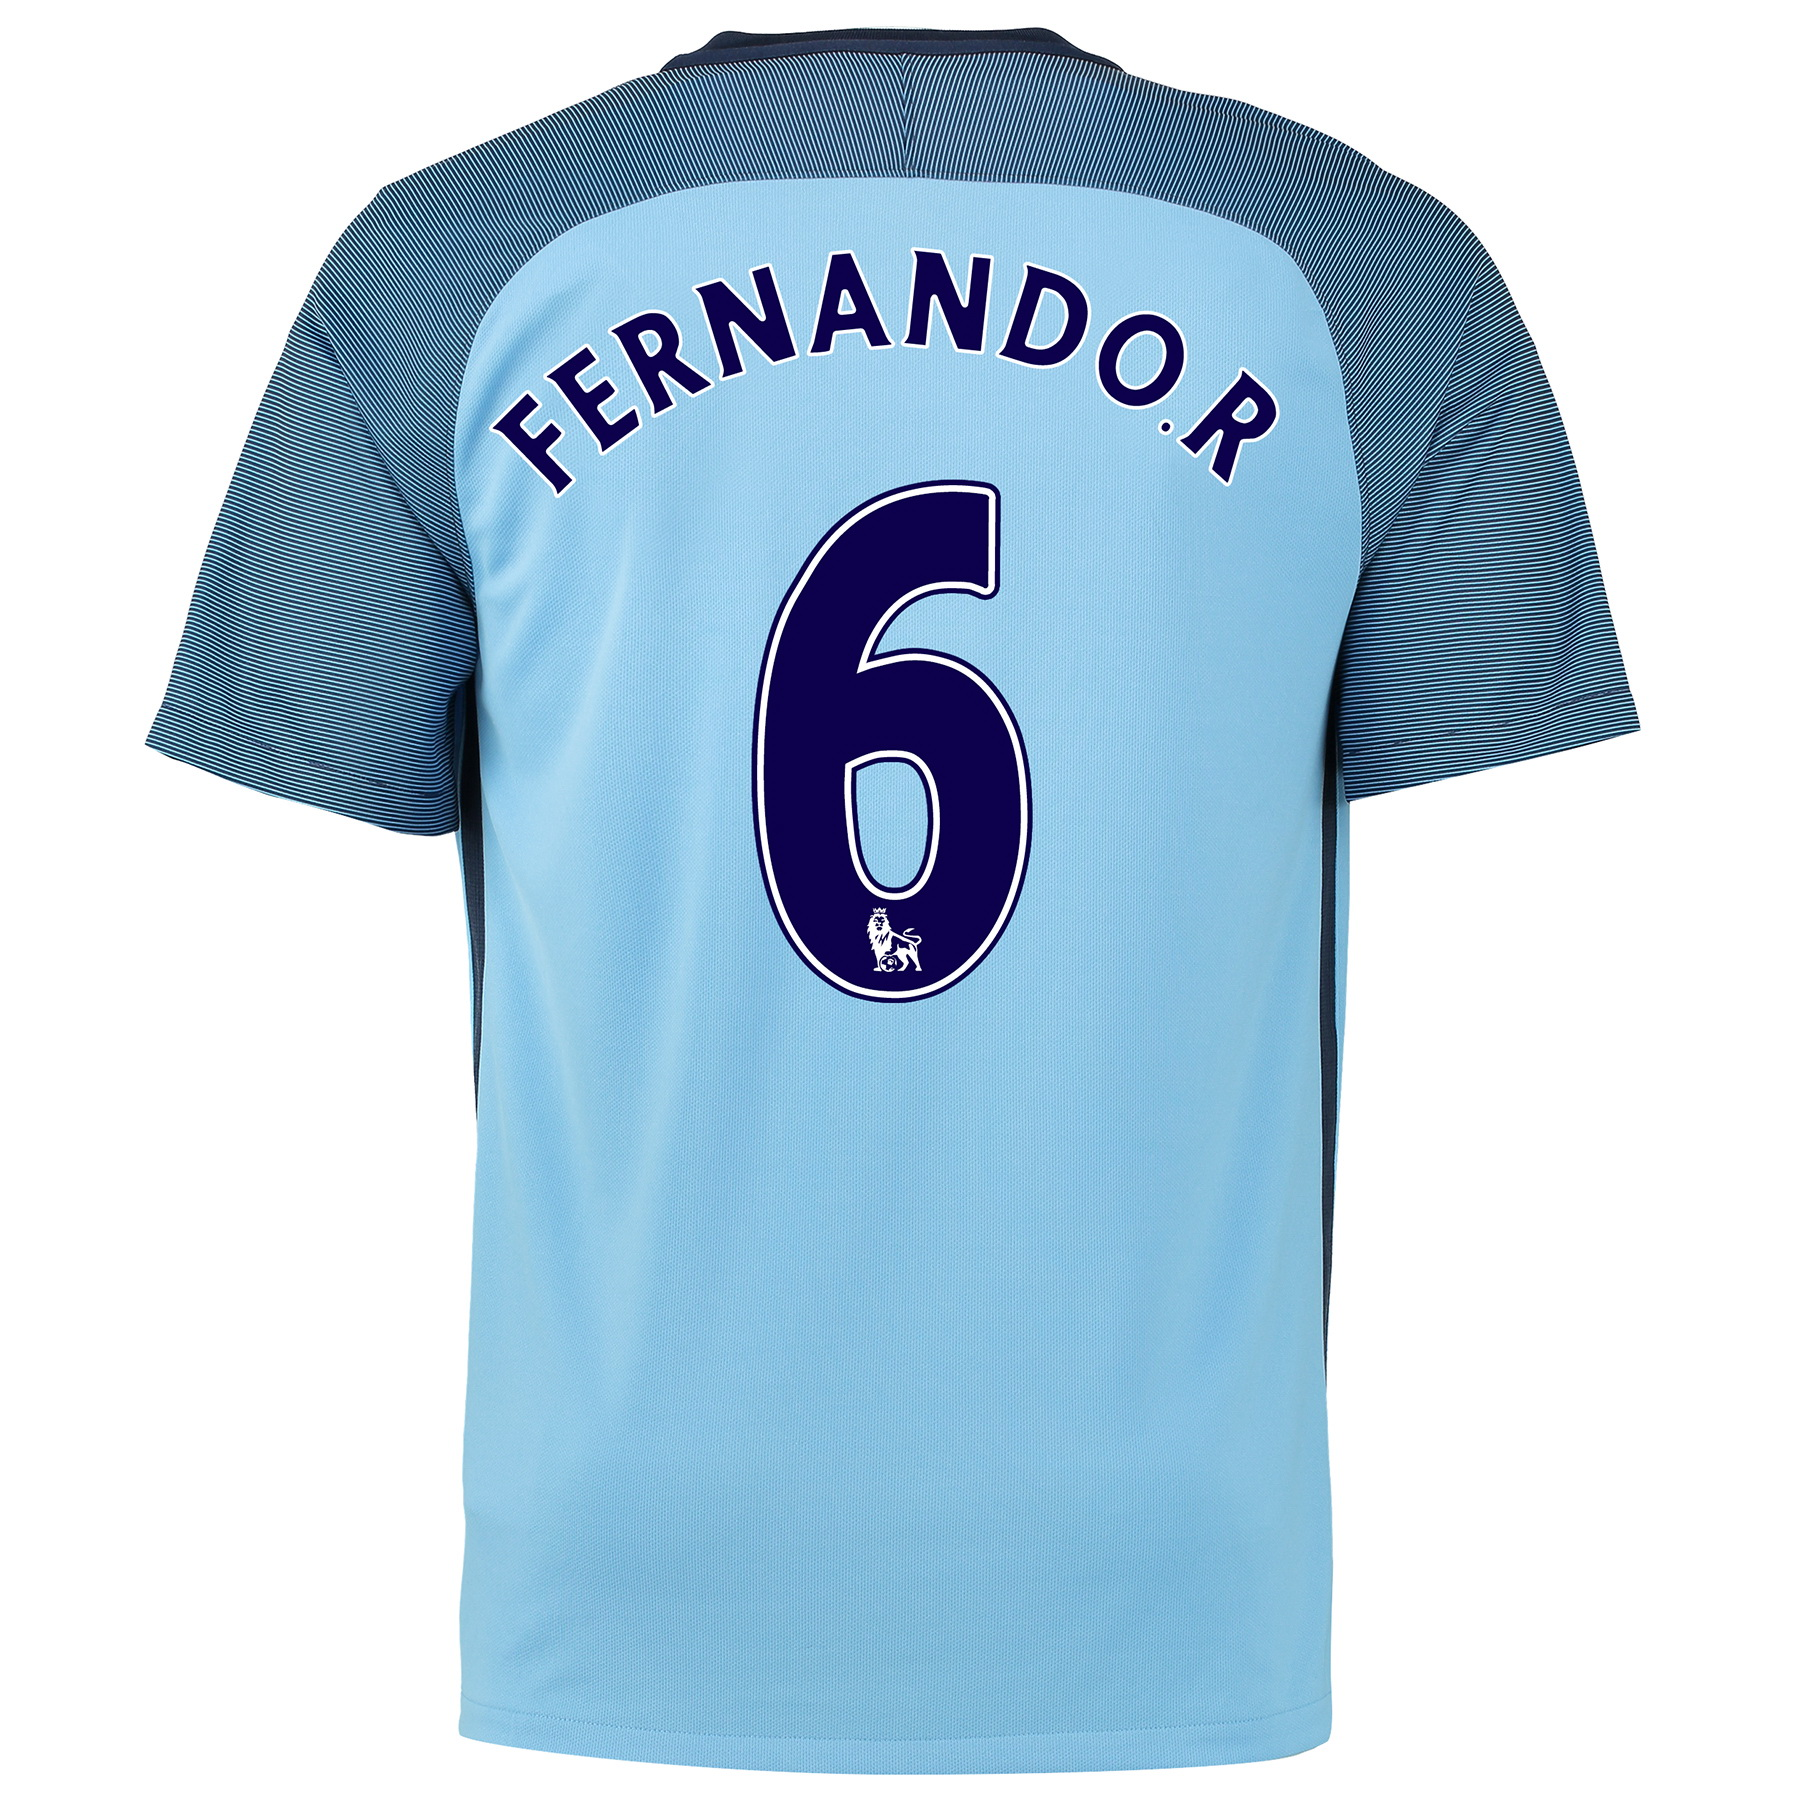 Manchester City Home Shirt 2016-17 - Kids with Fernando. R 6 printing